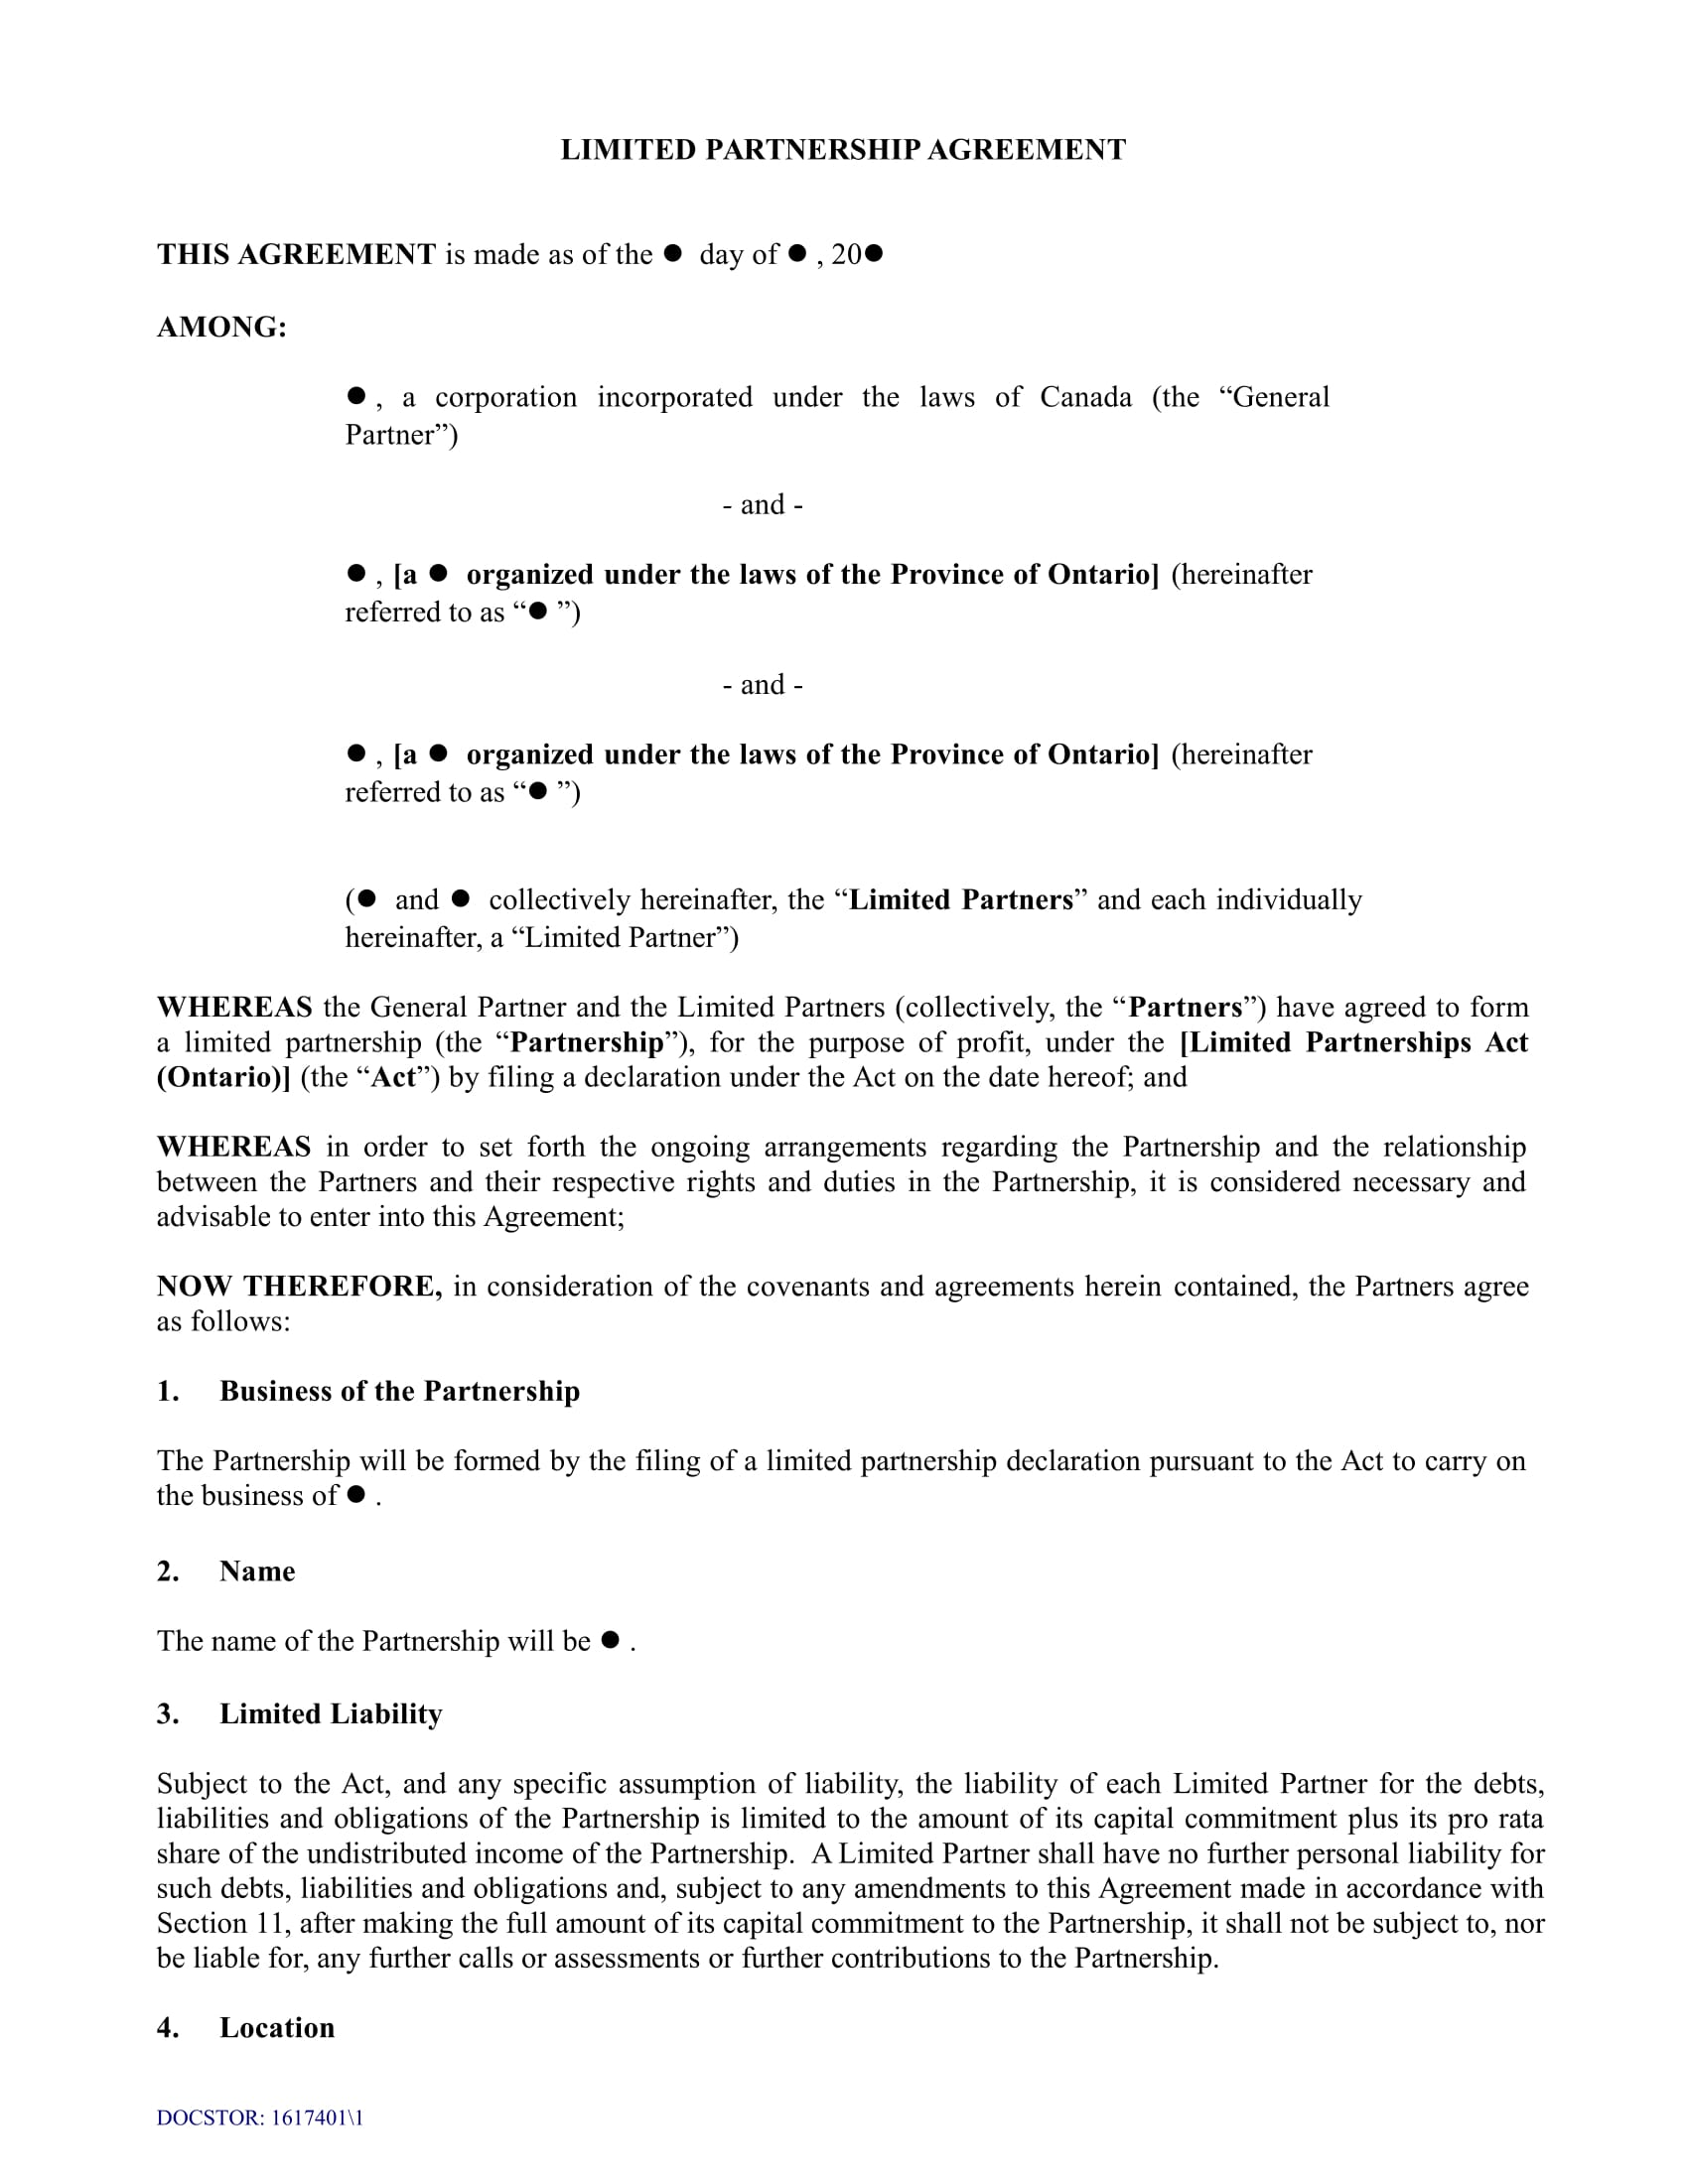 limited partnership agreement sample form 1